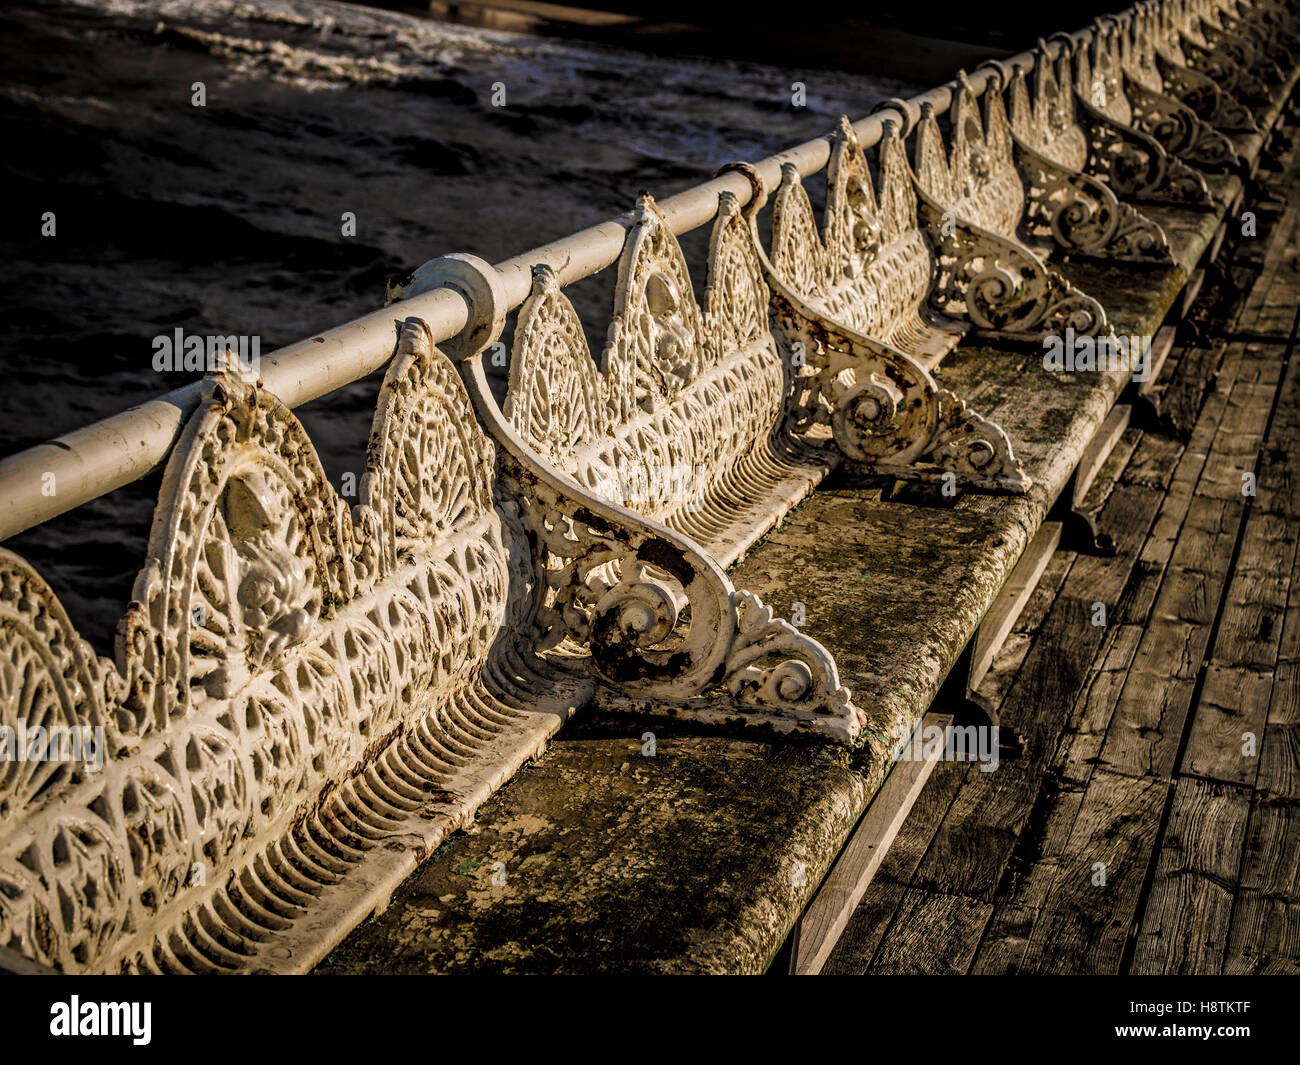 Traditional cast iron seats in a state of disrepair on Pier, Blackpool, Lancashire, UK. - Stock Image